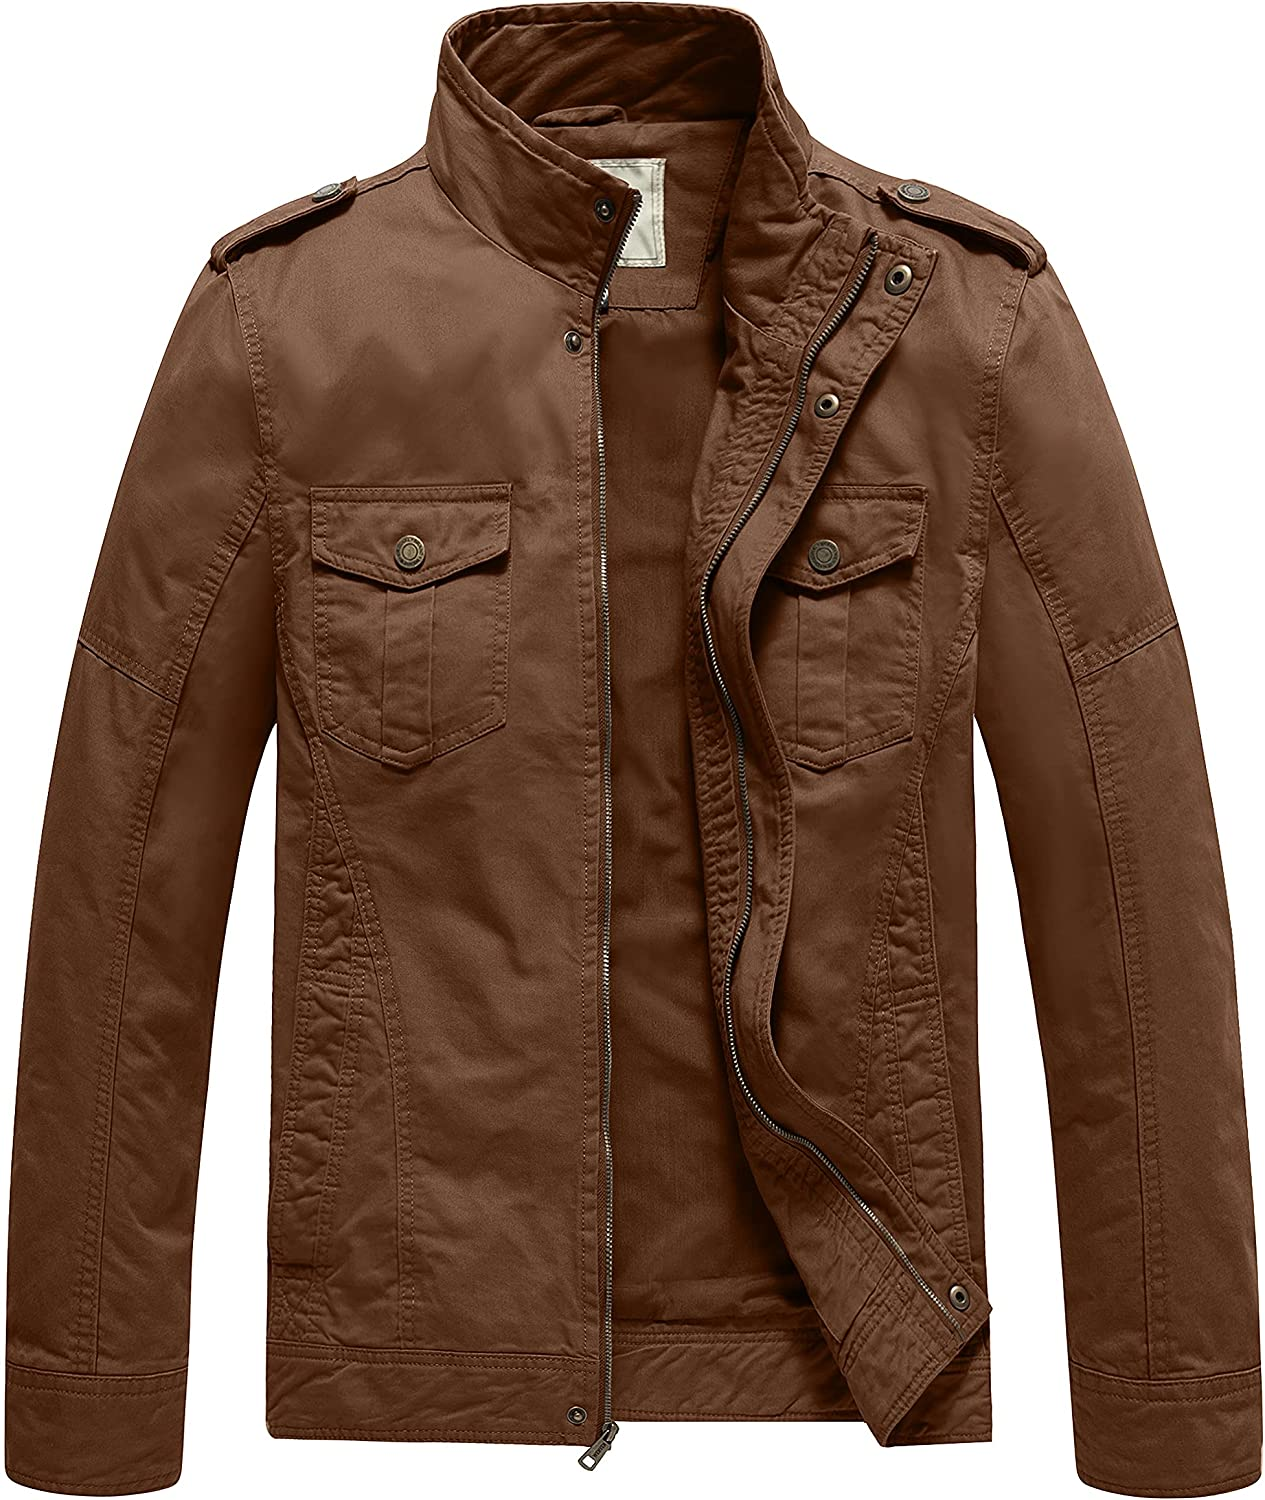 WenVen Men's Casual Washed Jacket Max Special price 48% OFF Military Cotton